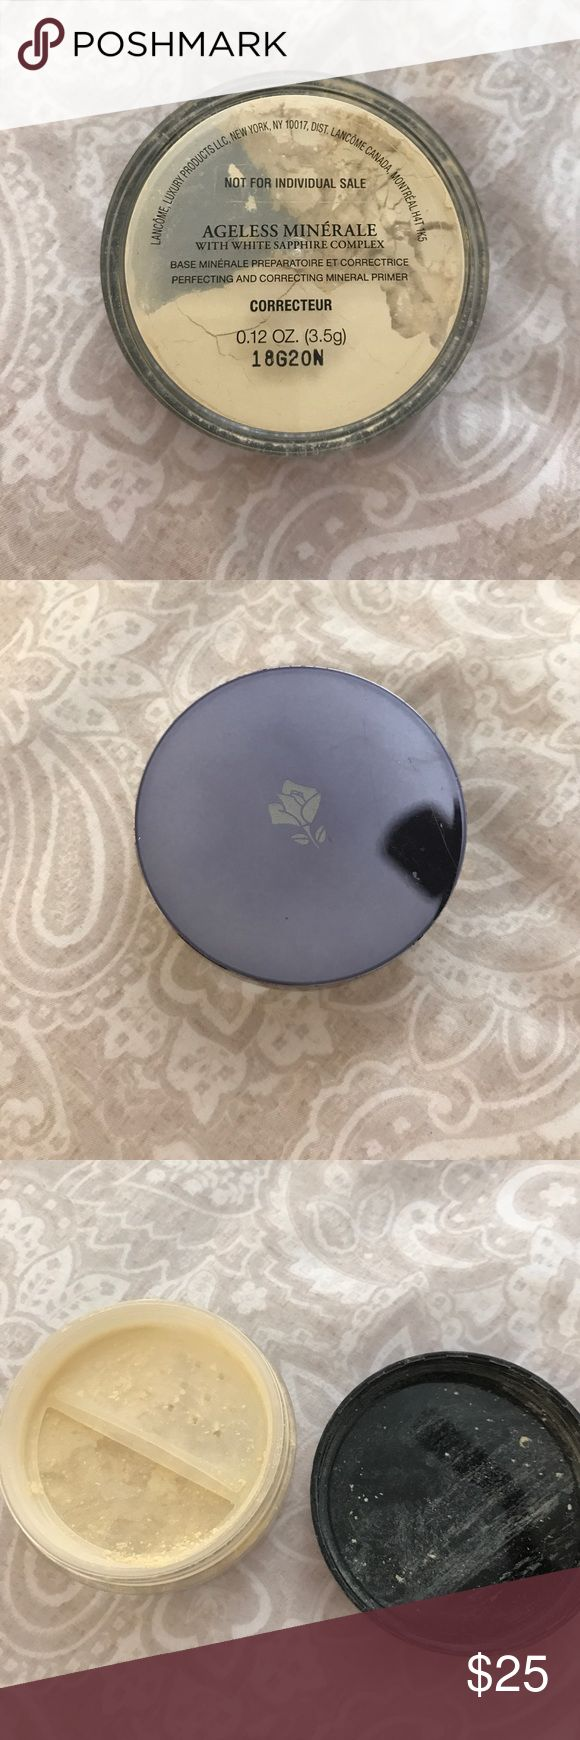 Lancome Ageless Minerale Powder Ageless Minerale with white sapphire complex (CORRECTEUR). Full Size hardly used. Lancome Makeup Face Powder